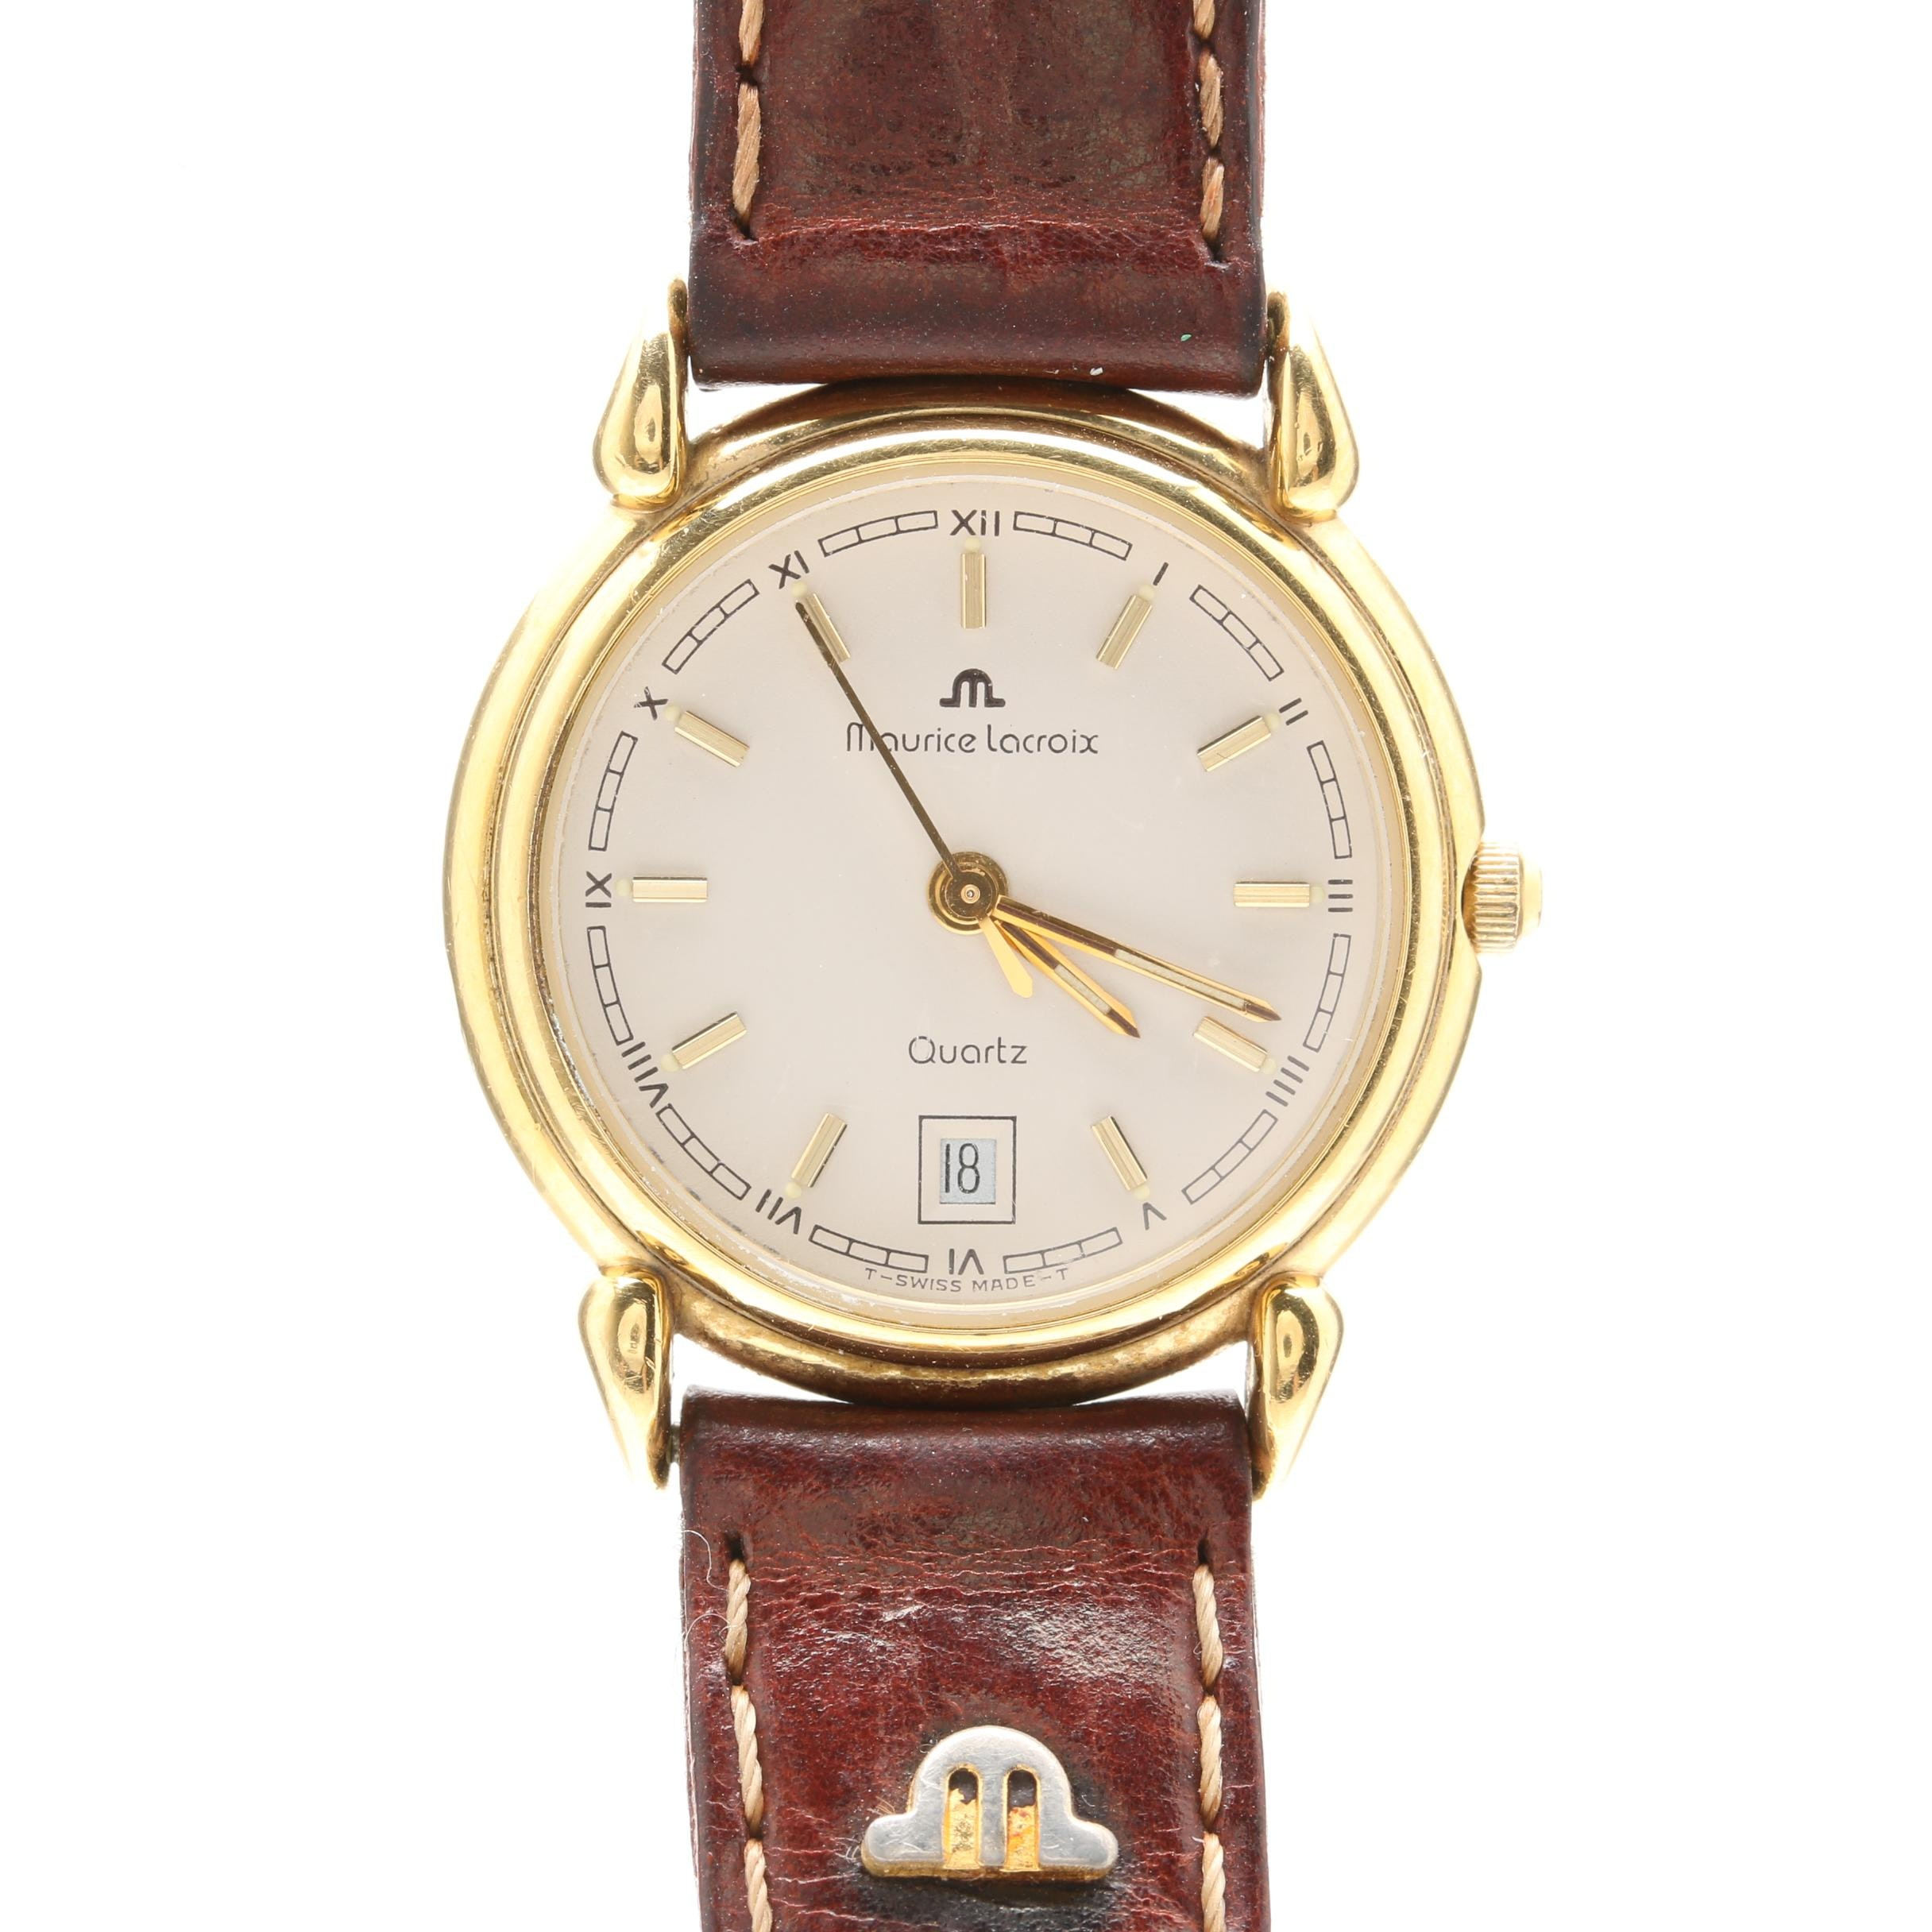 Maurice Lacroix Stainless Steel and Leather Wristwatch